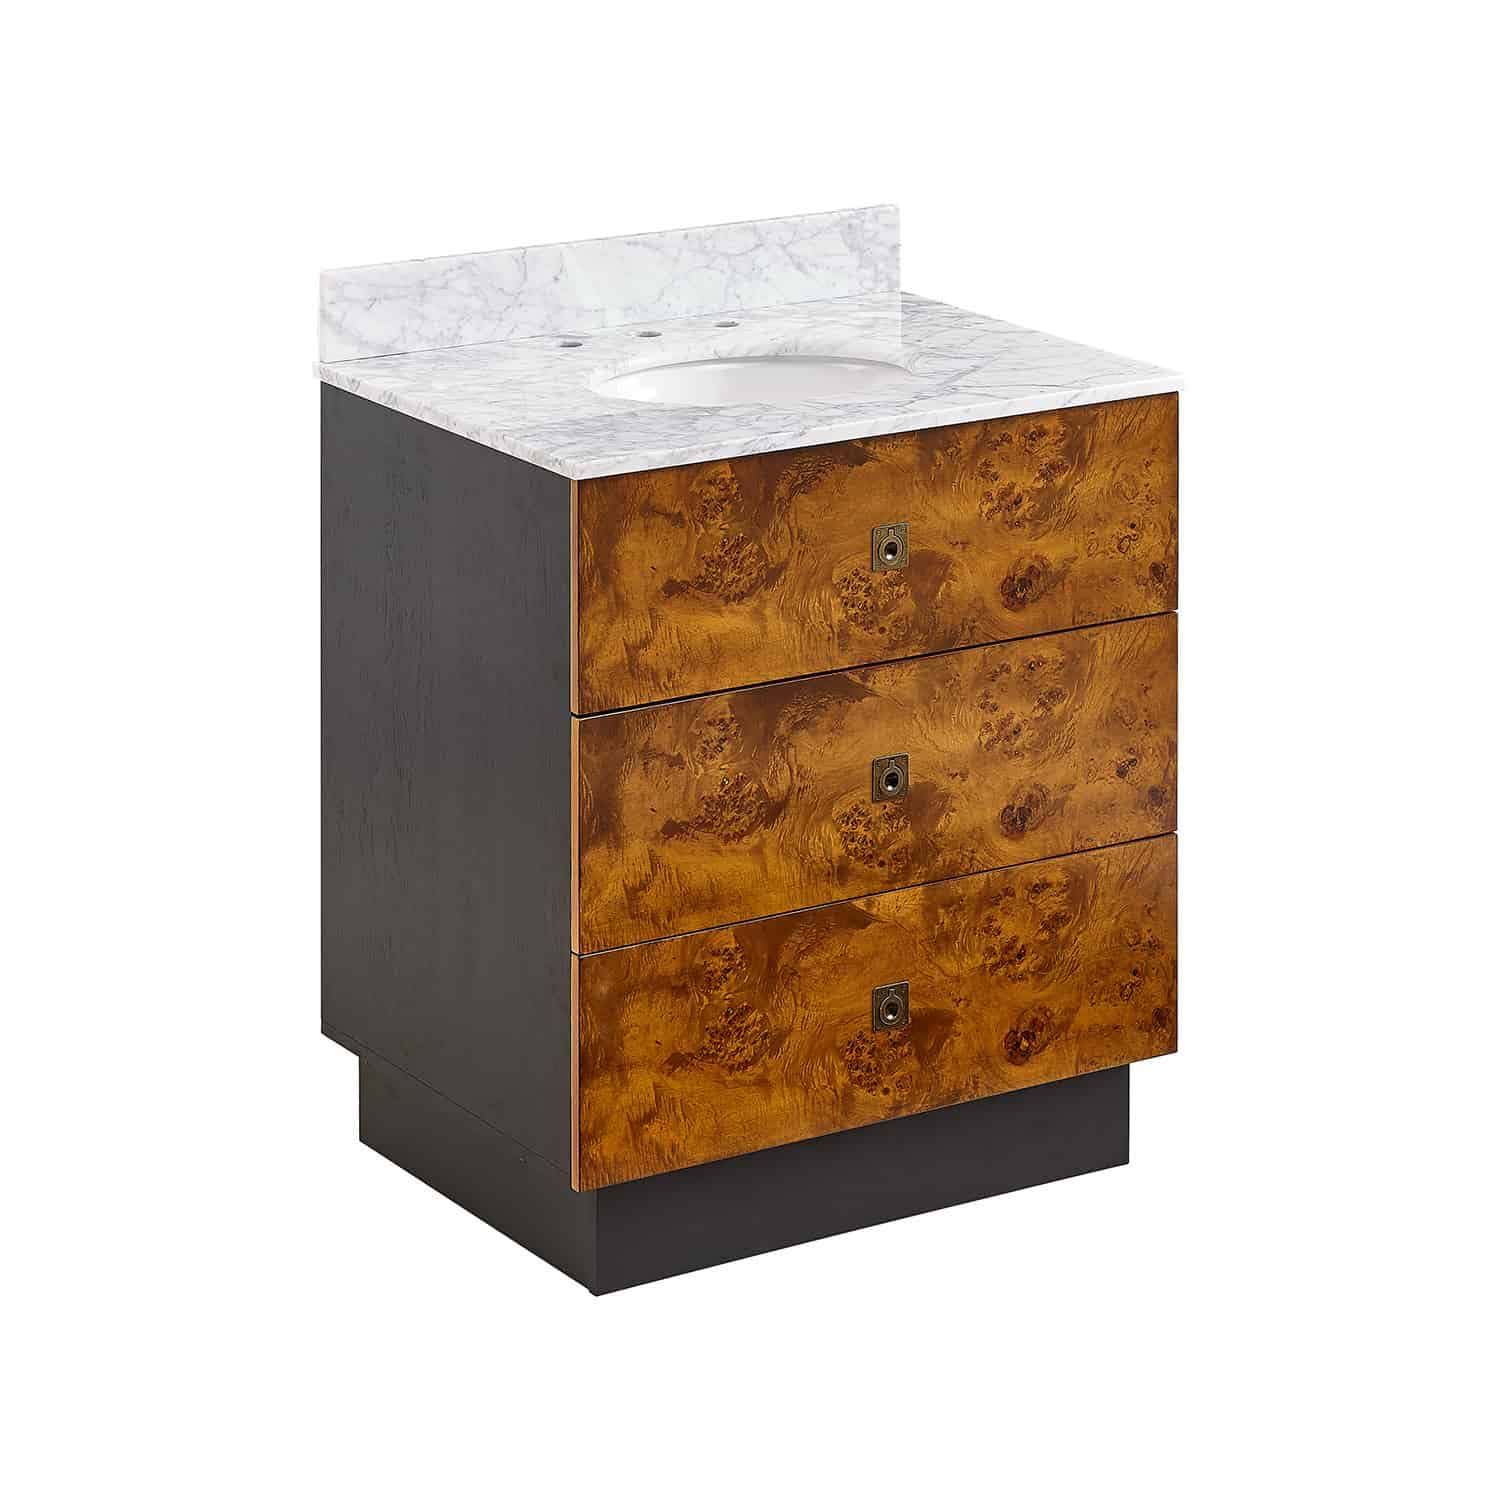 Betlow Marble Top Vanity Sink Holly & Martin